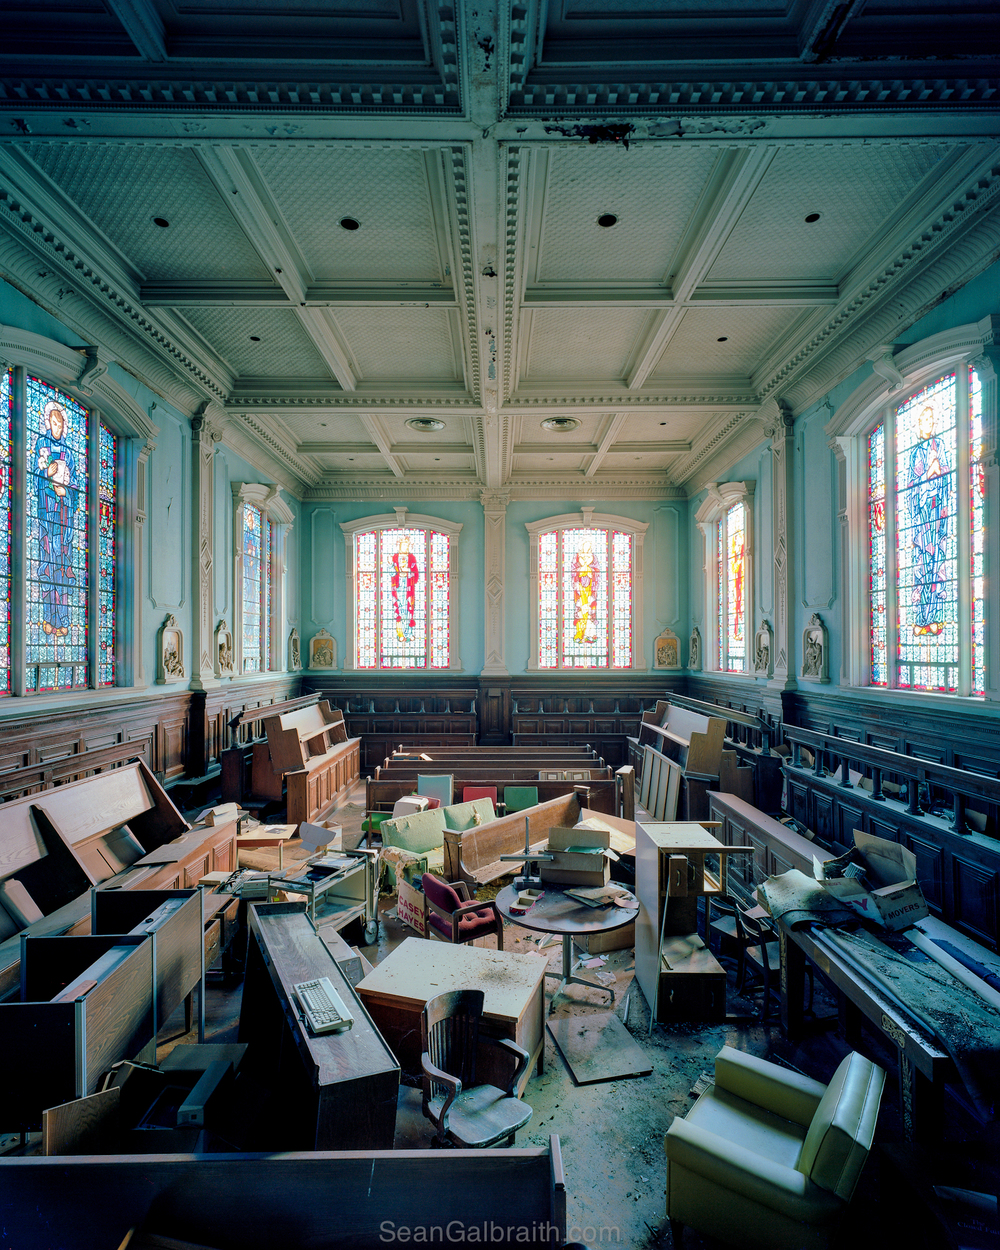 Sean_Galbraith_Blue_Chapel.jpg